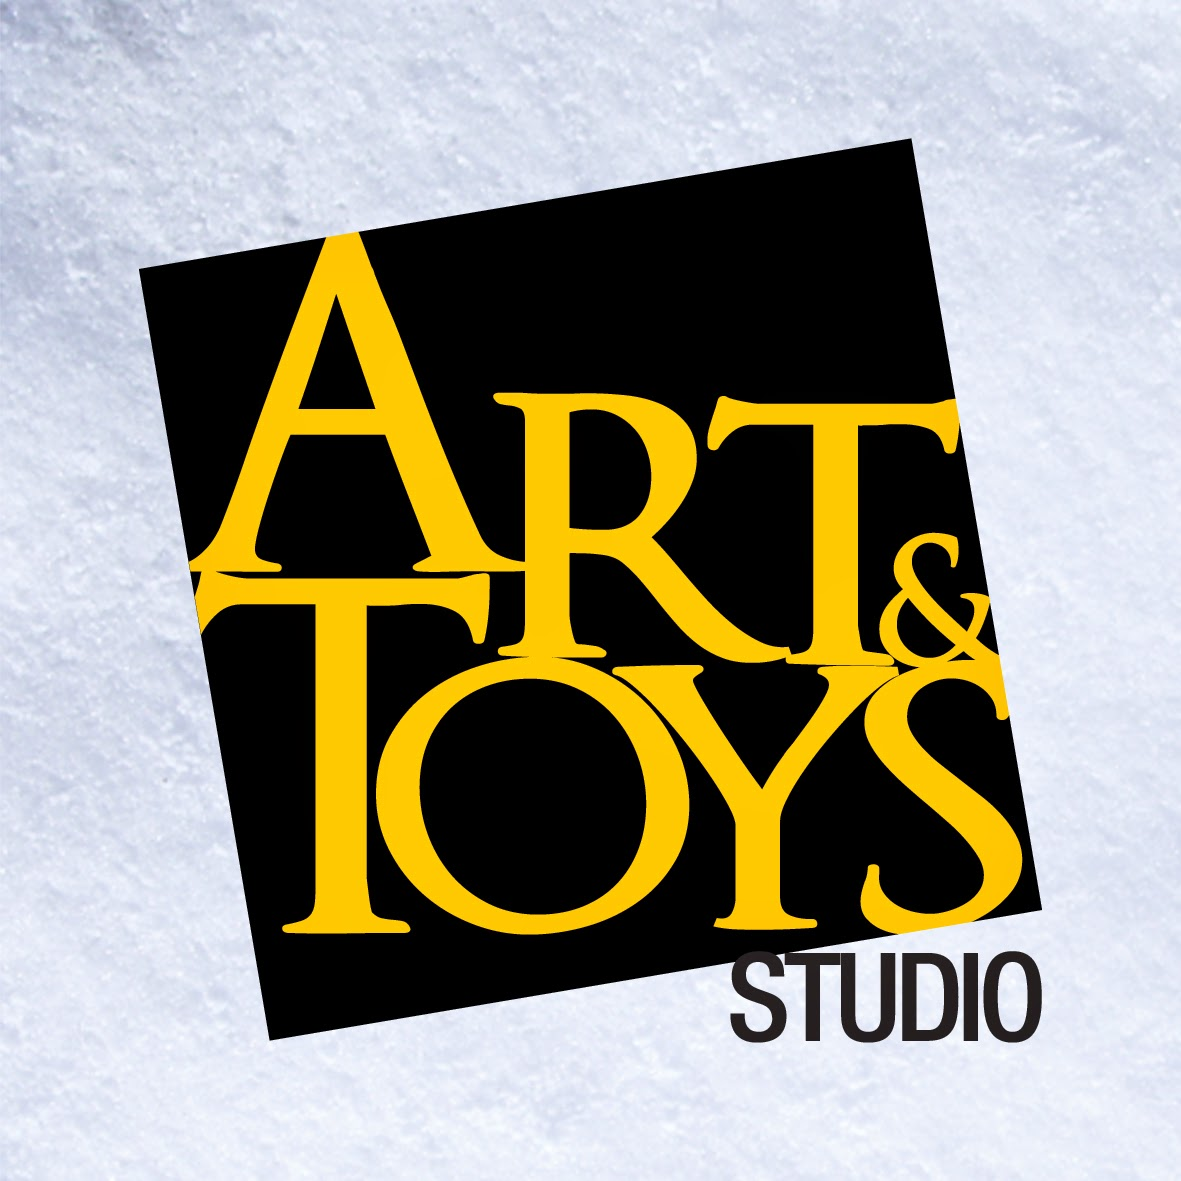 Art&Toys Studio